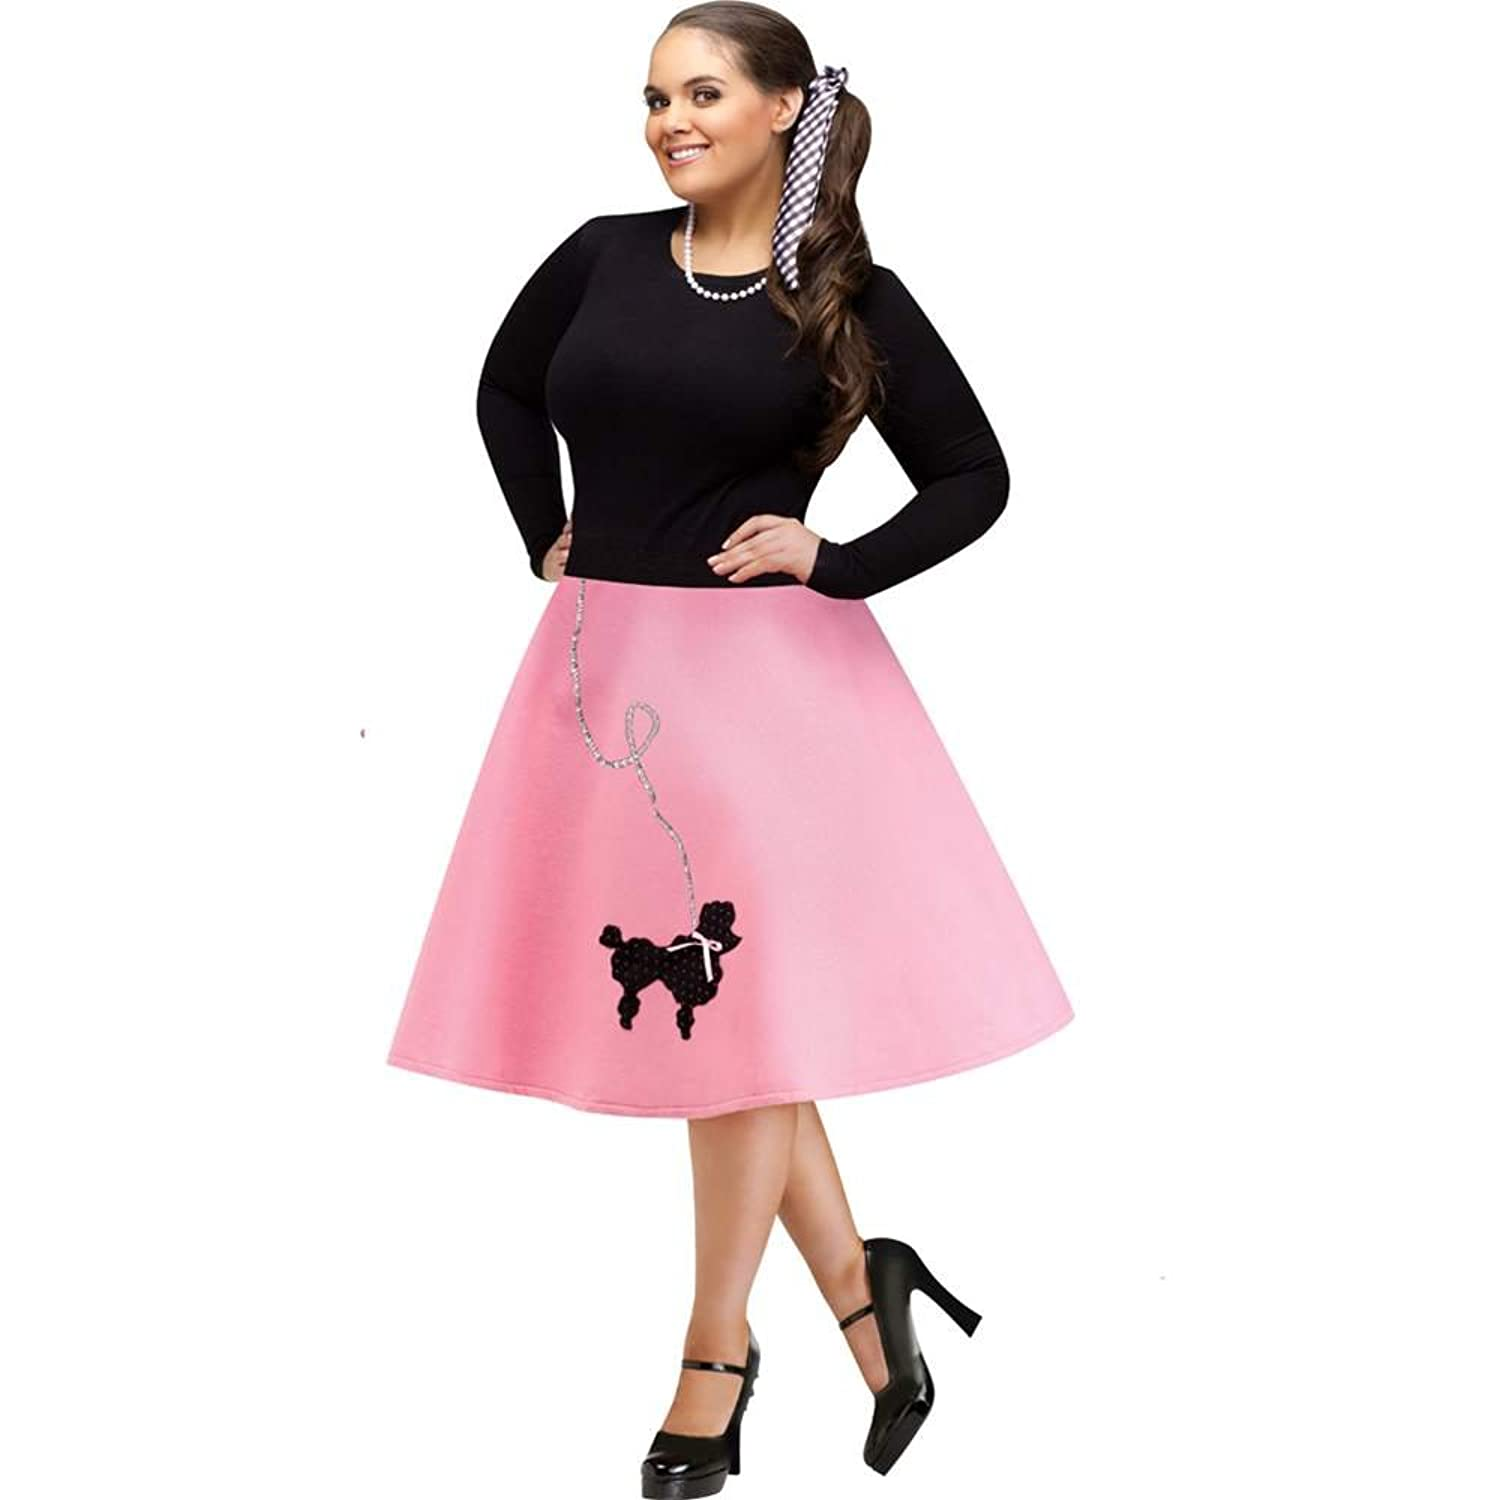 Retro Skirts: Vintage, Pencil, Circle, & Plus Sizes FunWorld Plus-Size Poodle Skirt Costume $18.99 AT vintagedancer.com